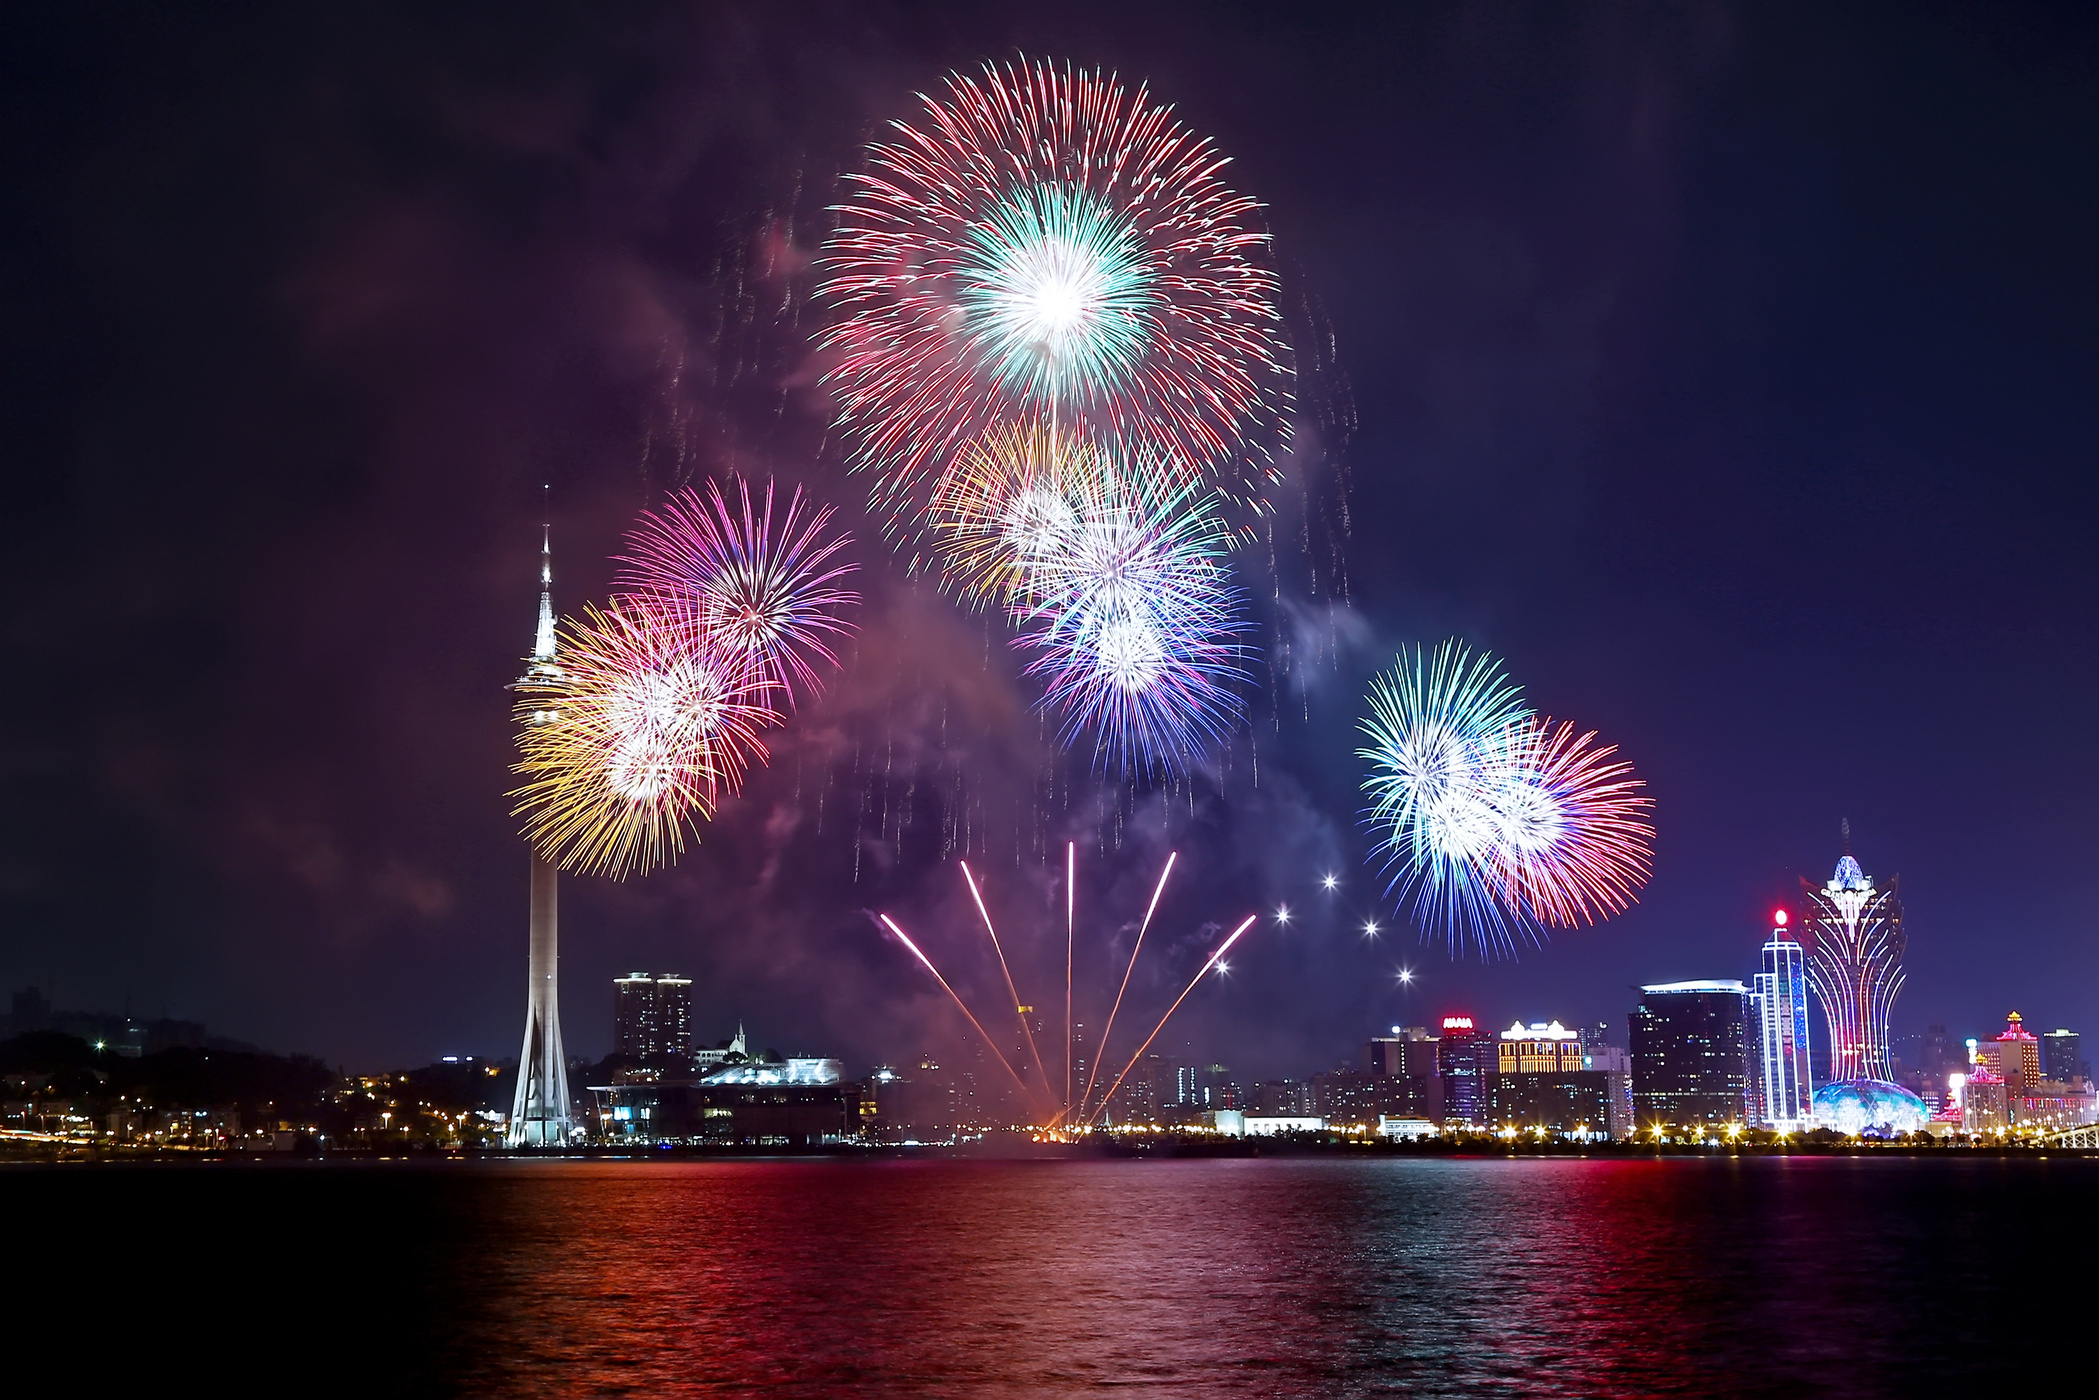 Japan wins Macao International Fireworks contest